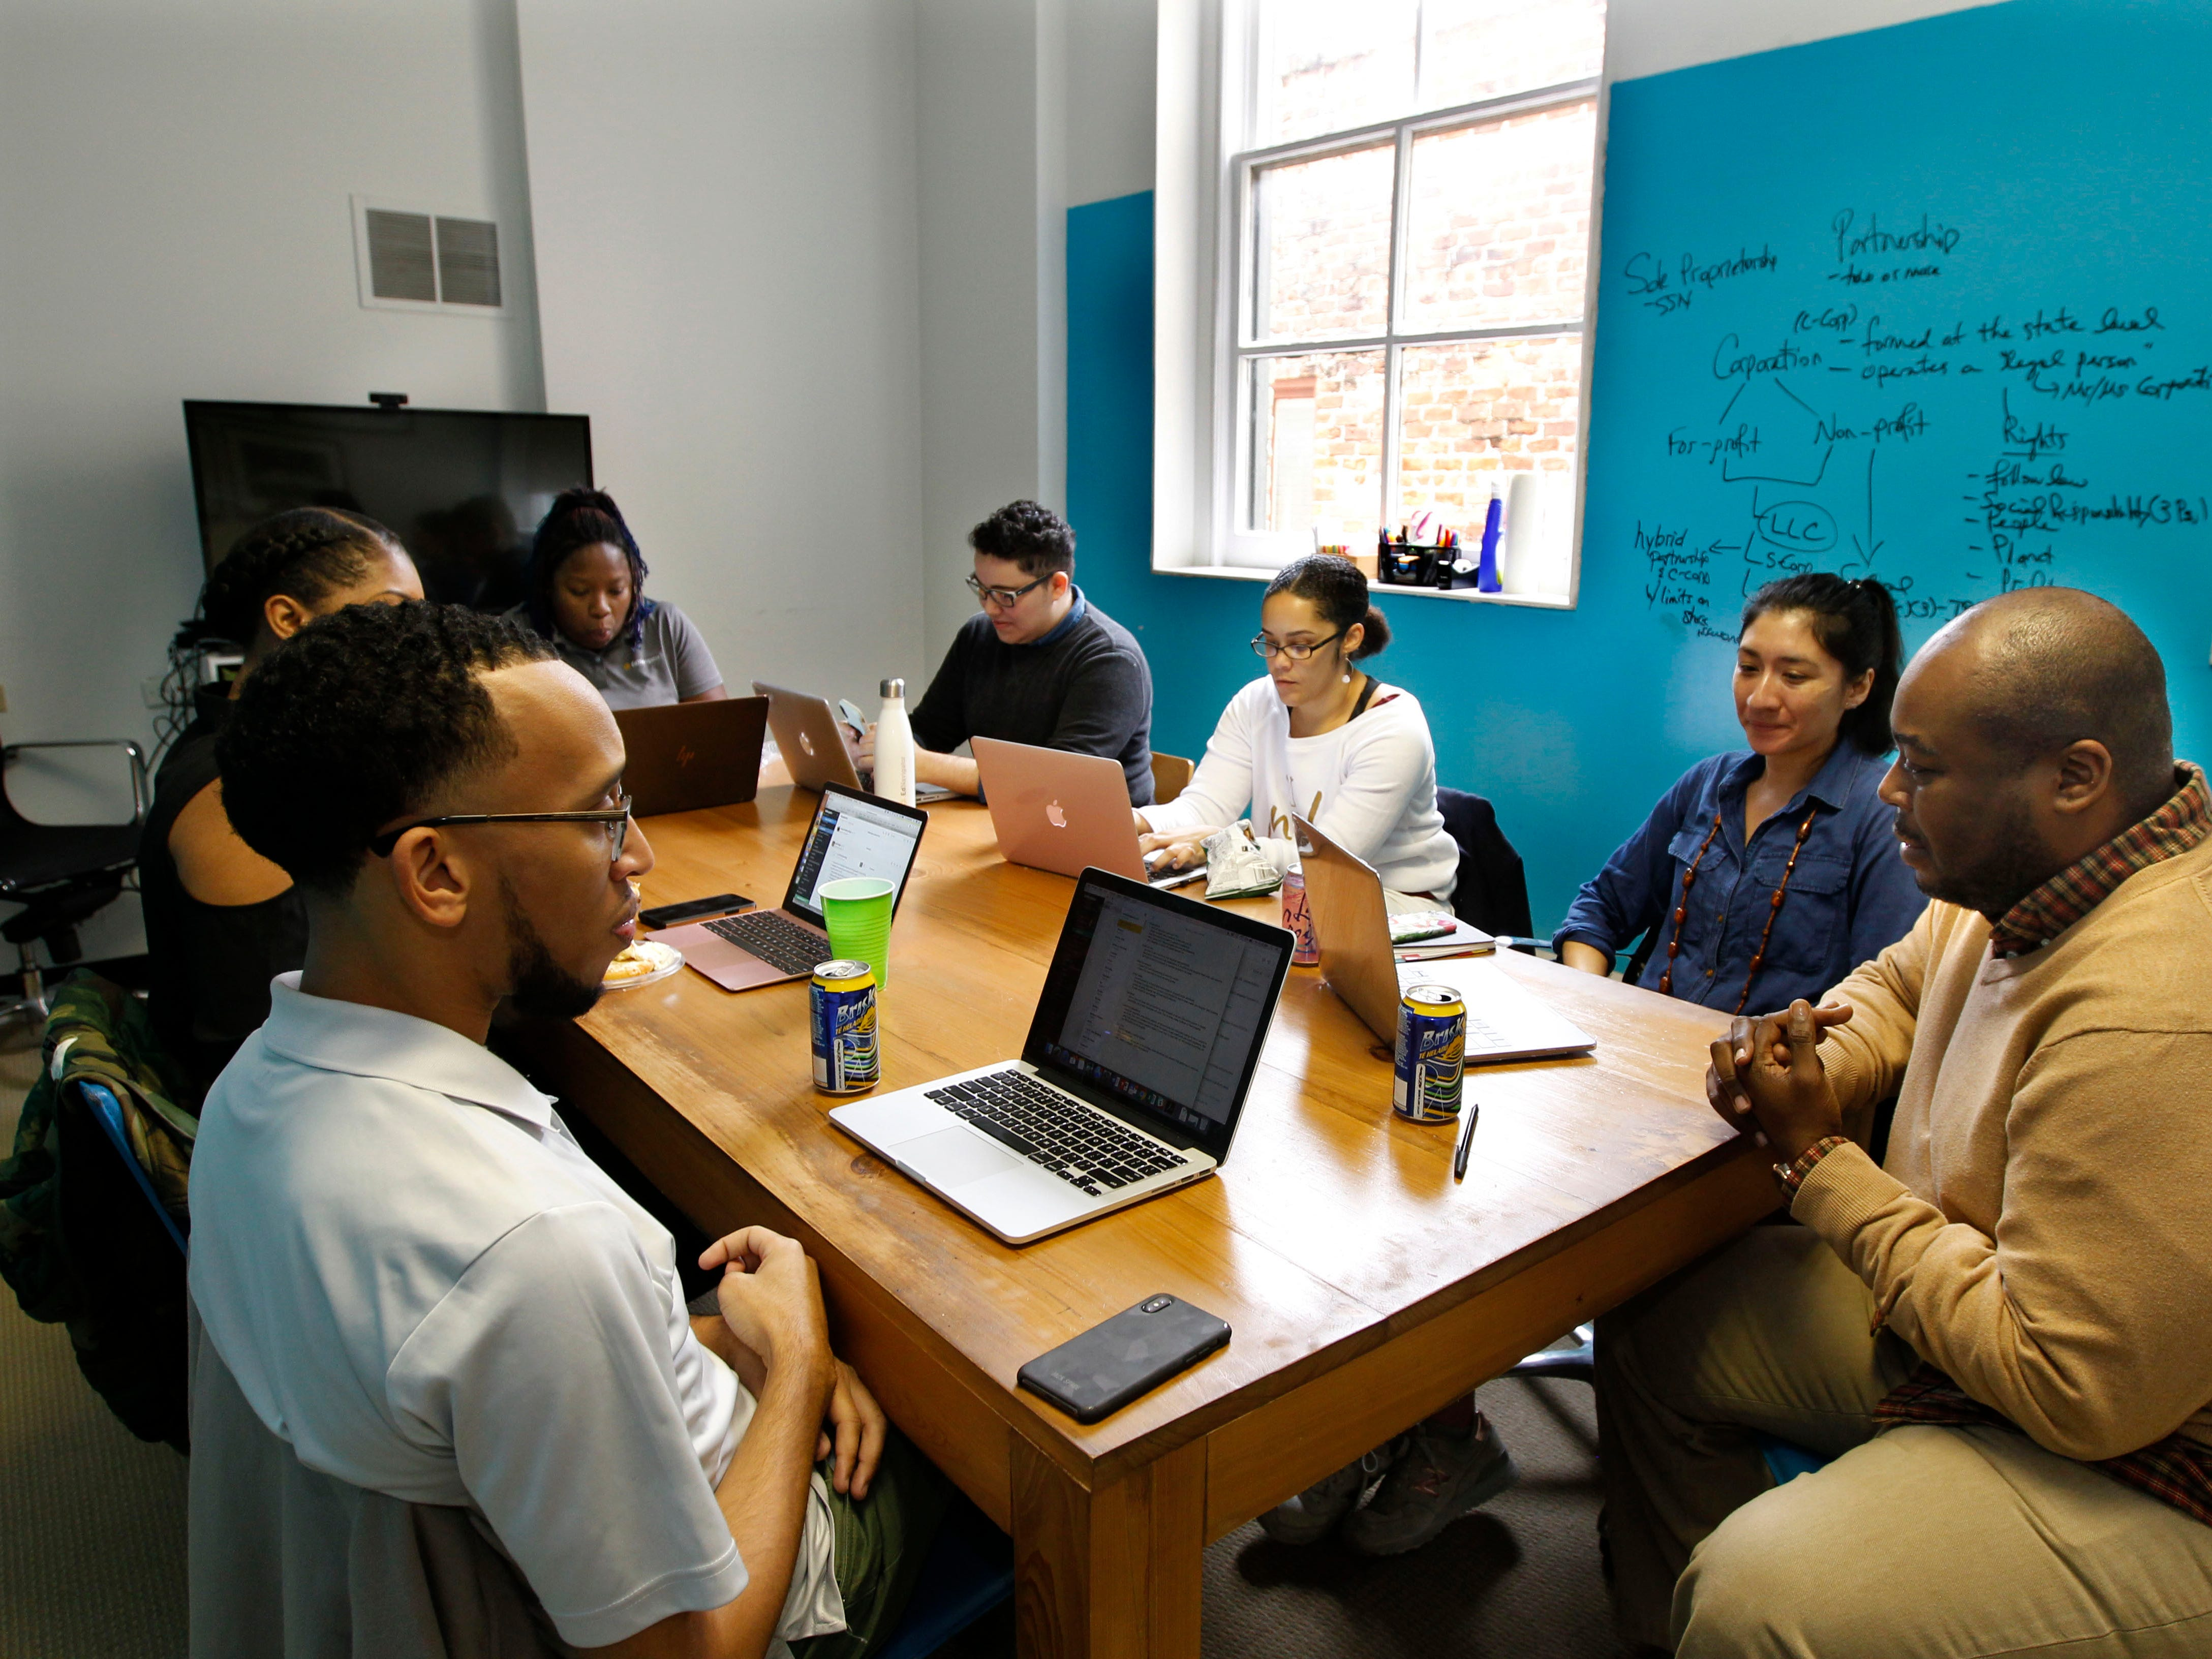 EdNavigators staff (clockwise from left)  Gary Briggs, Whitney Henderson, Rameisha Johnson,  Ileana Ortiz, Summer Duperon, Caroline Cahuantzi, and Ruben Johnson gather for a weekly meeting. EdNavigators was founded to offer family-friendly guidance on education options.